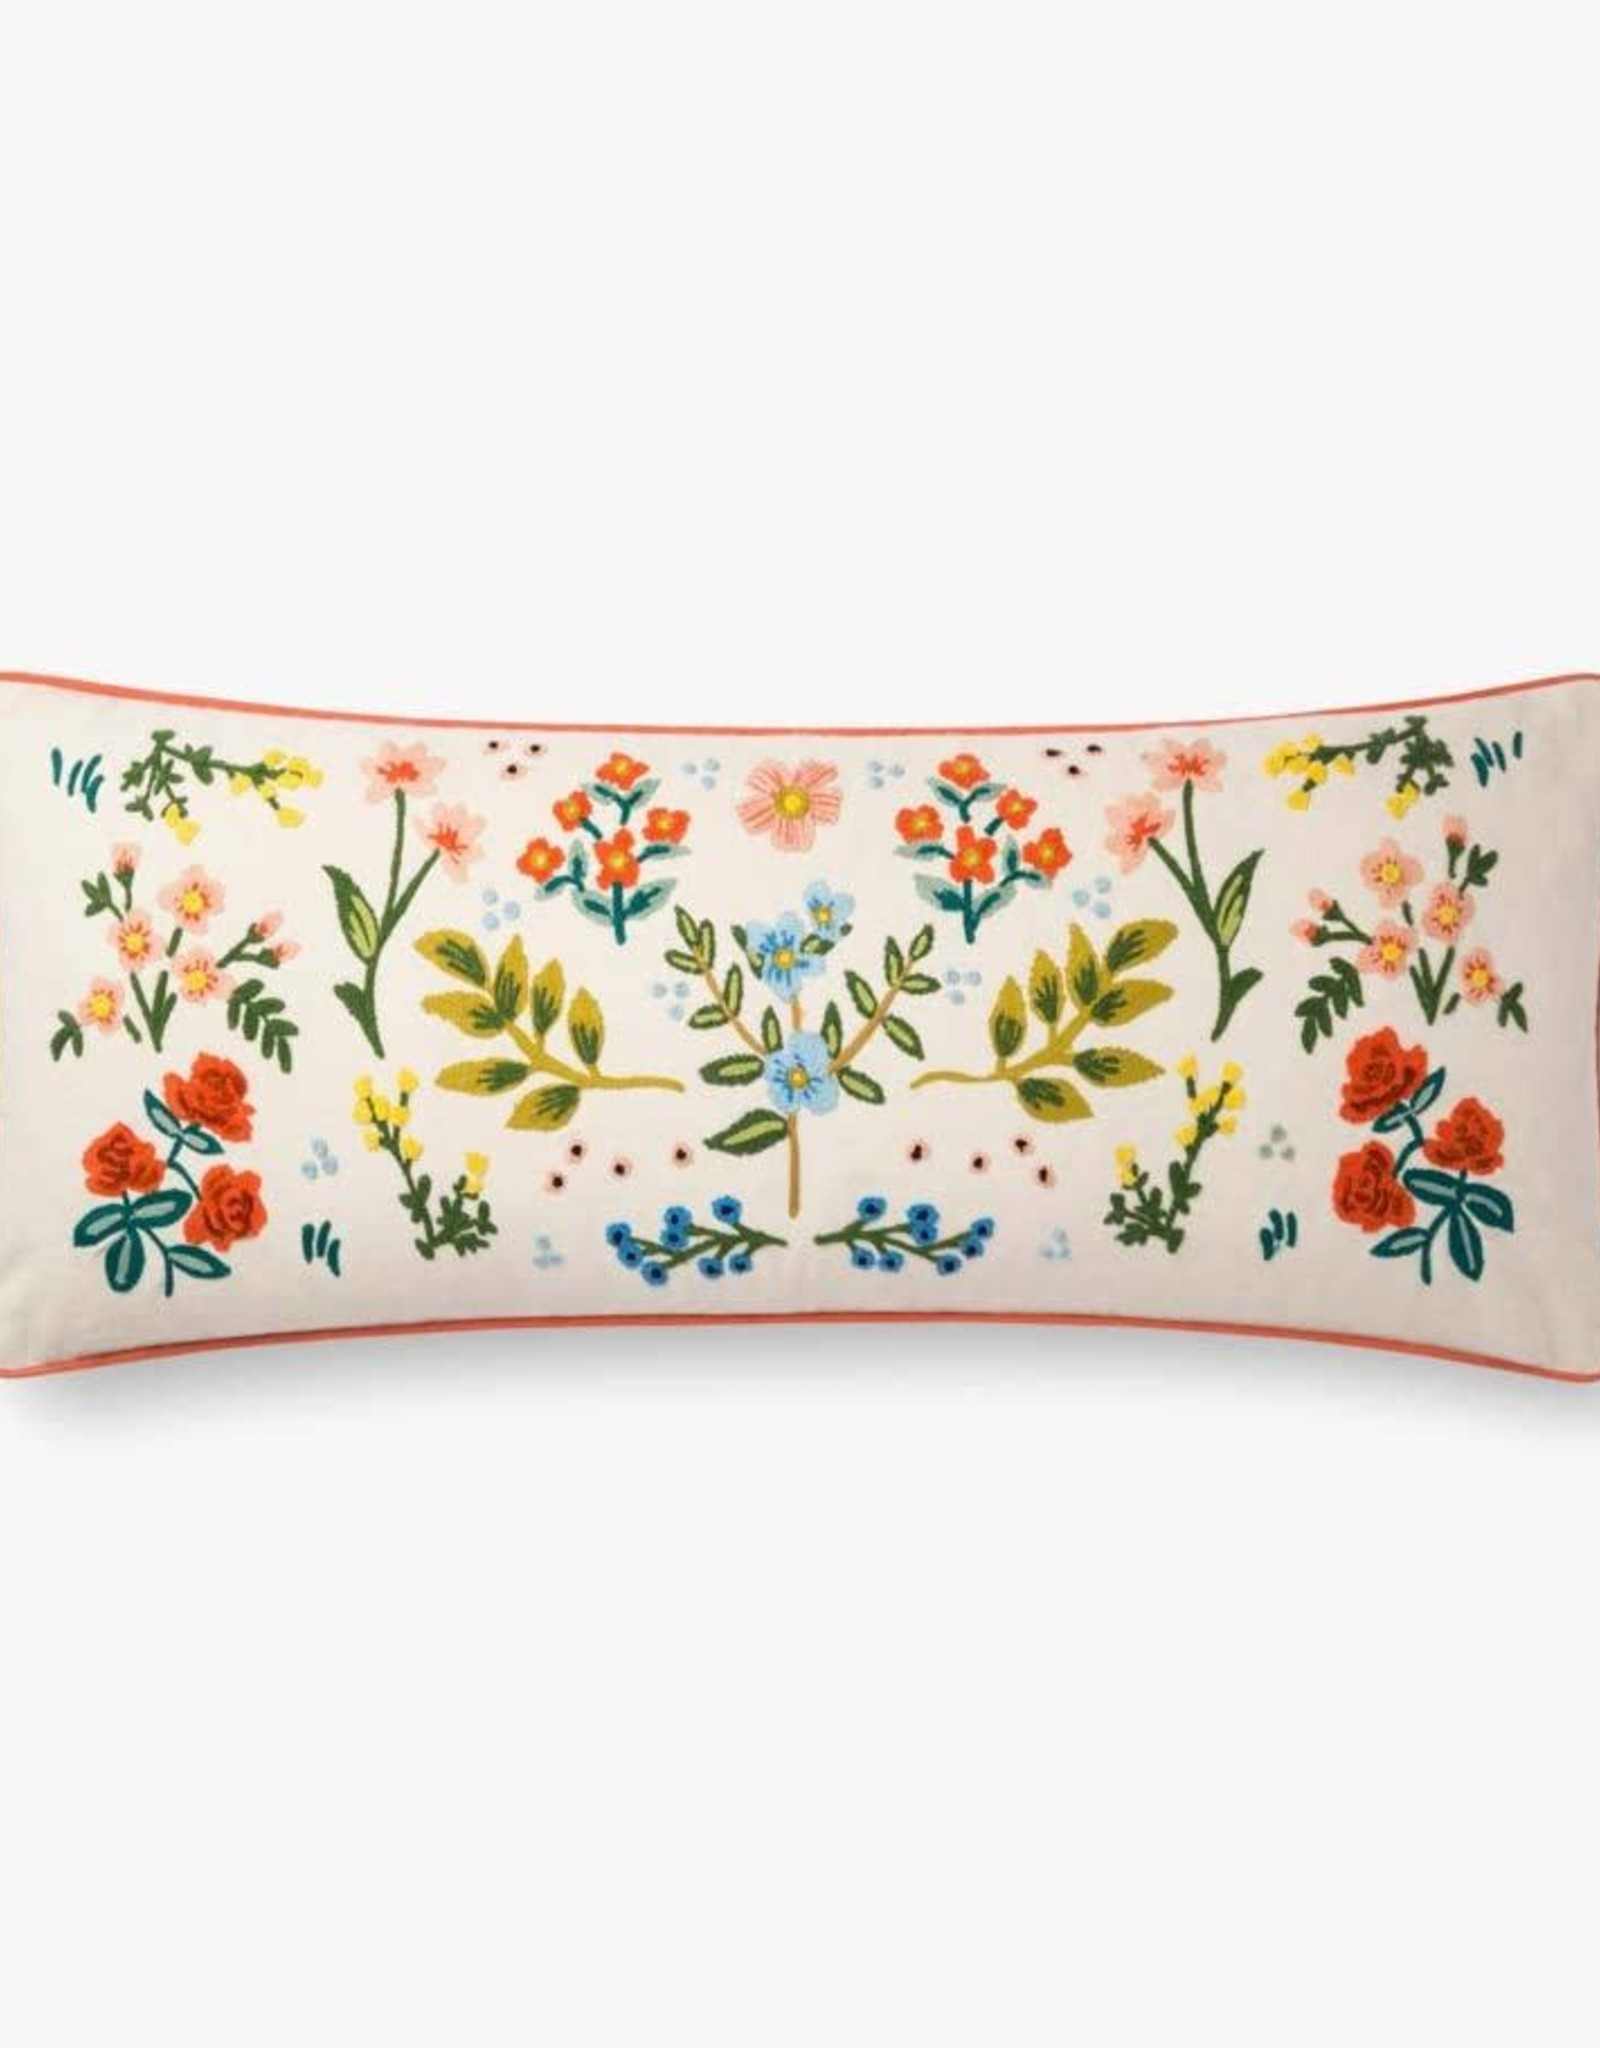 Rifle Paper Co by Loloi Rifle Paper Co IVORY / MULTI COLORS PILLOW